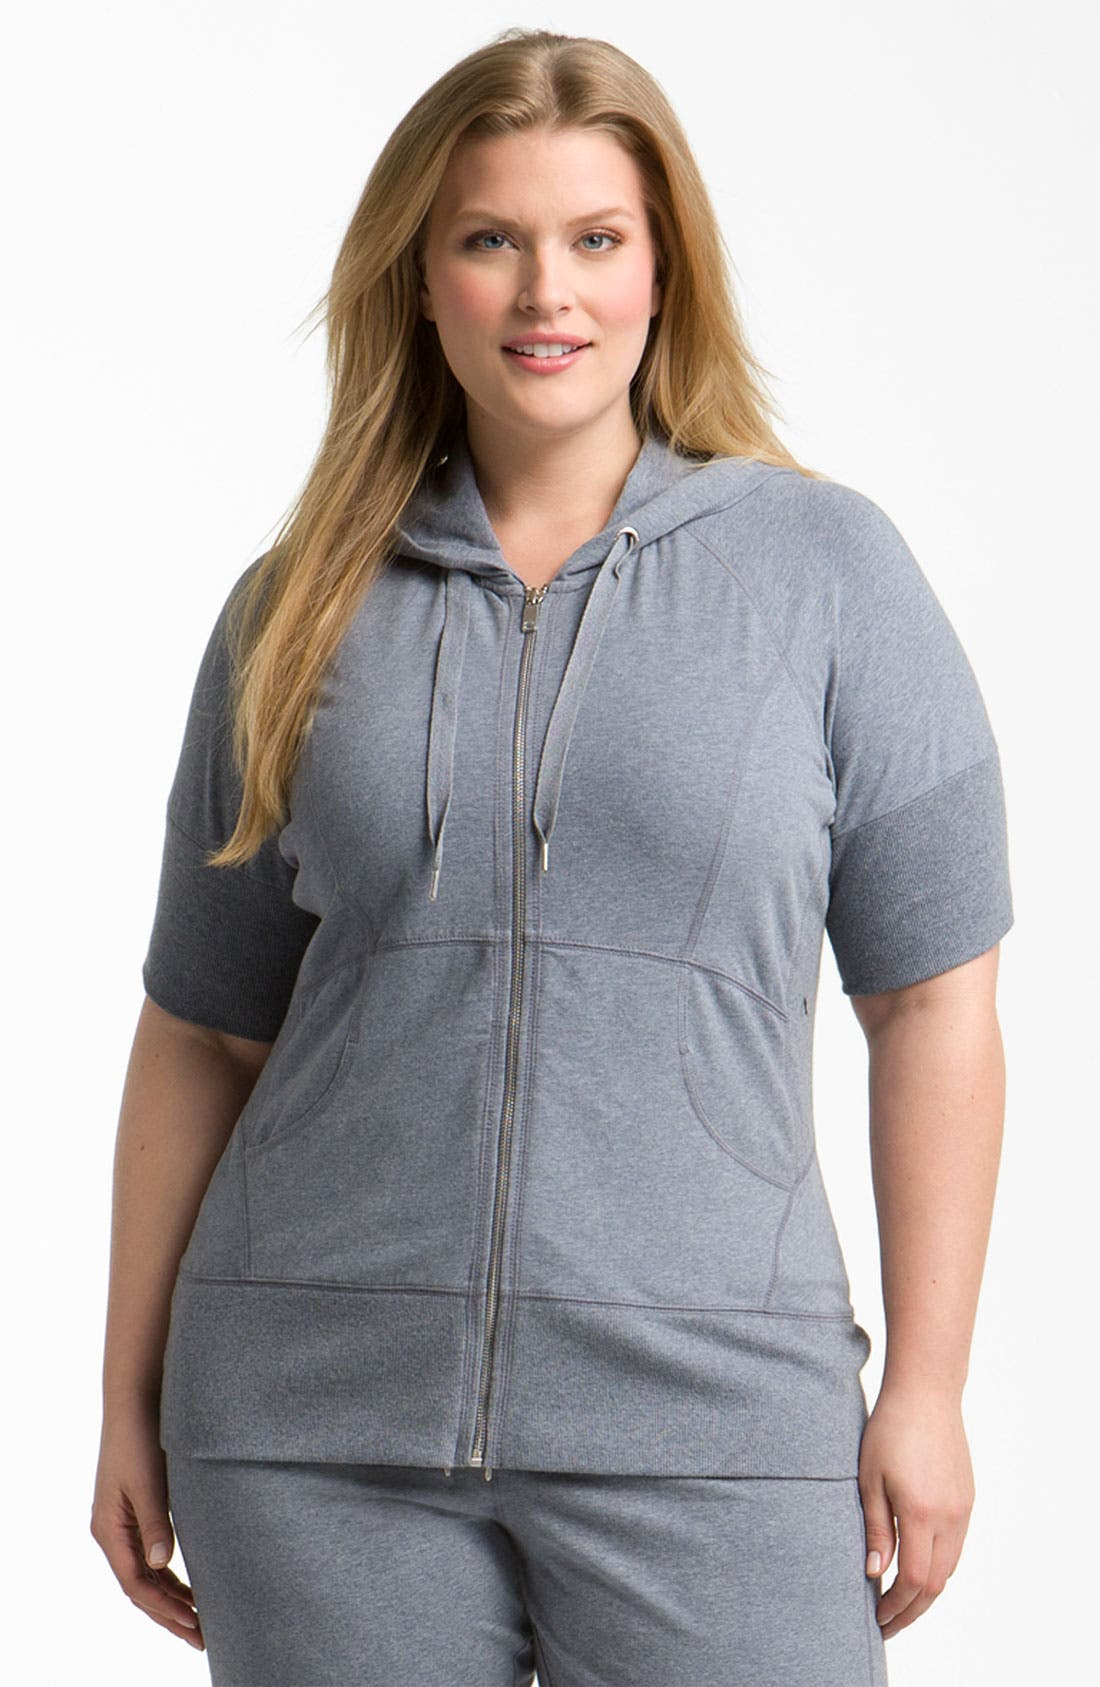 Main Image - Zella 'Supersoft' Short Sleeve Hoodie (Plus)